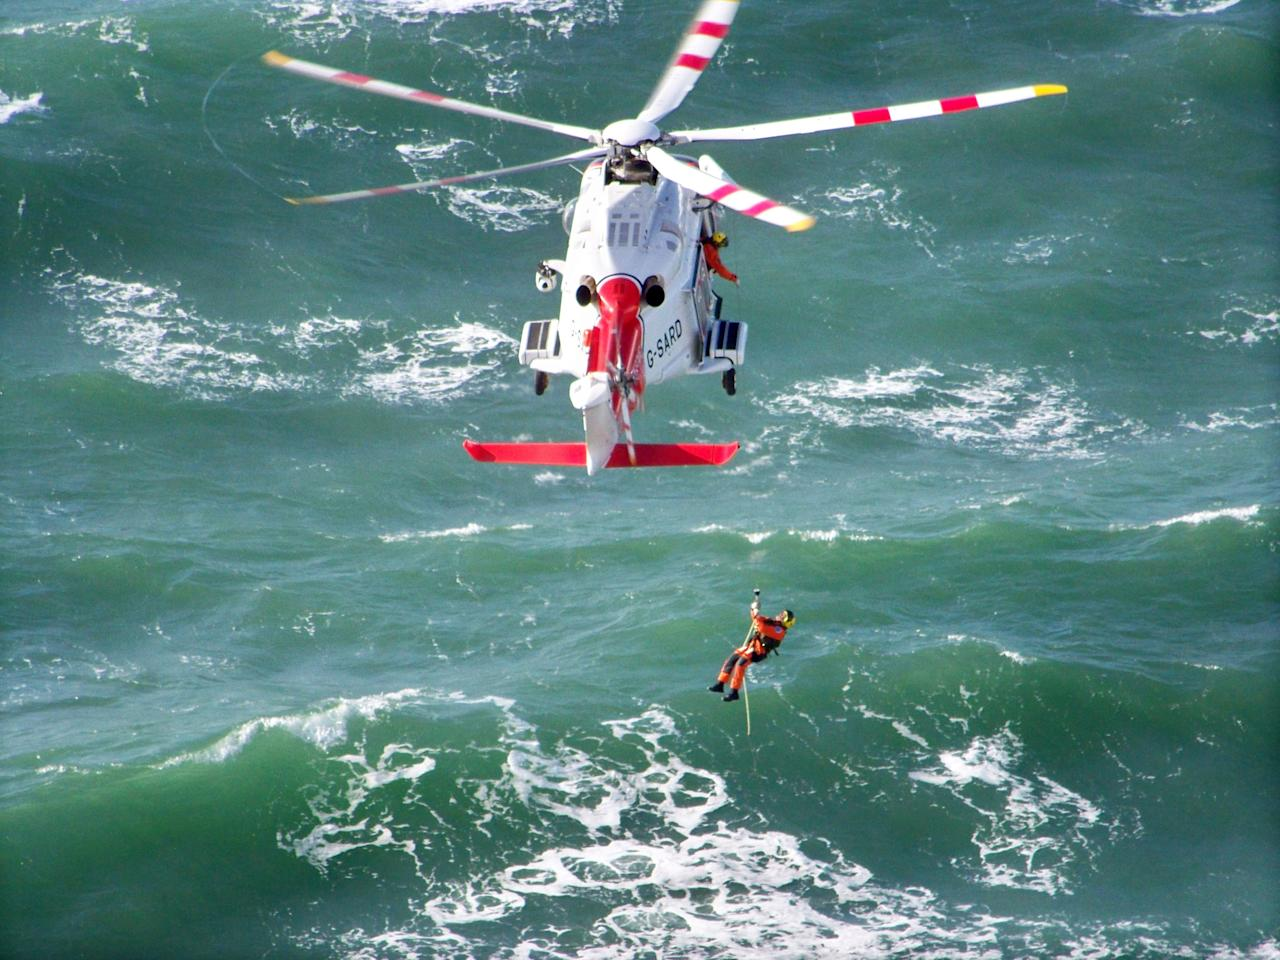 Needles Bravery, Isle of Wight: Matt Woods photographed this dramatic helicopter operation on a windy October afternoon, and was awarded first prize in the 'Living the View' youth class. (Matt Woods, Landscape Photographer of the Year)